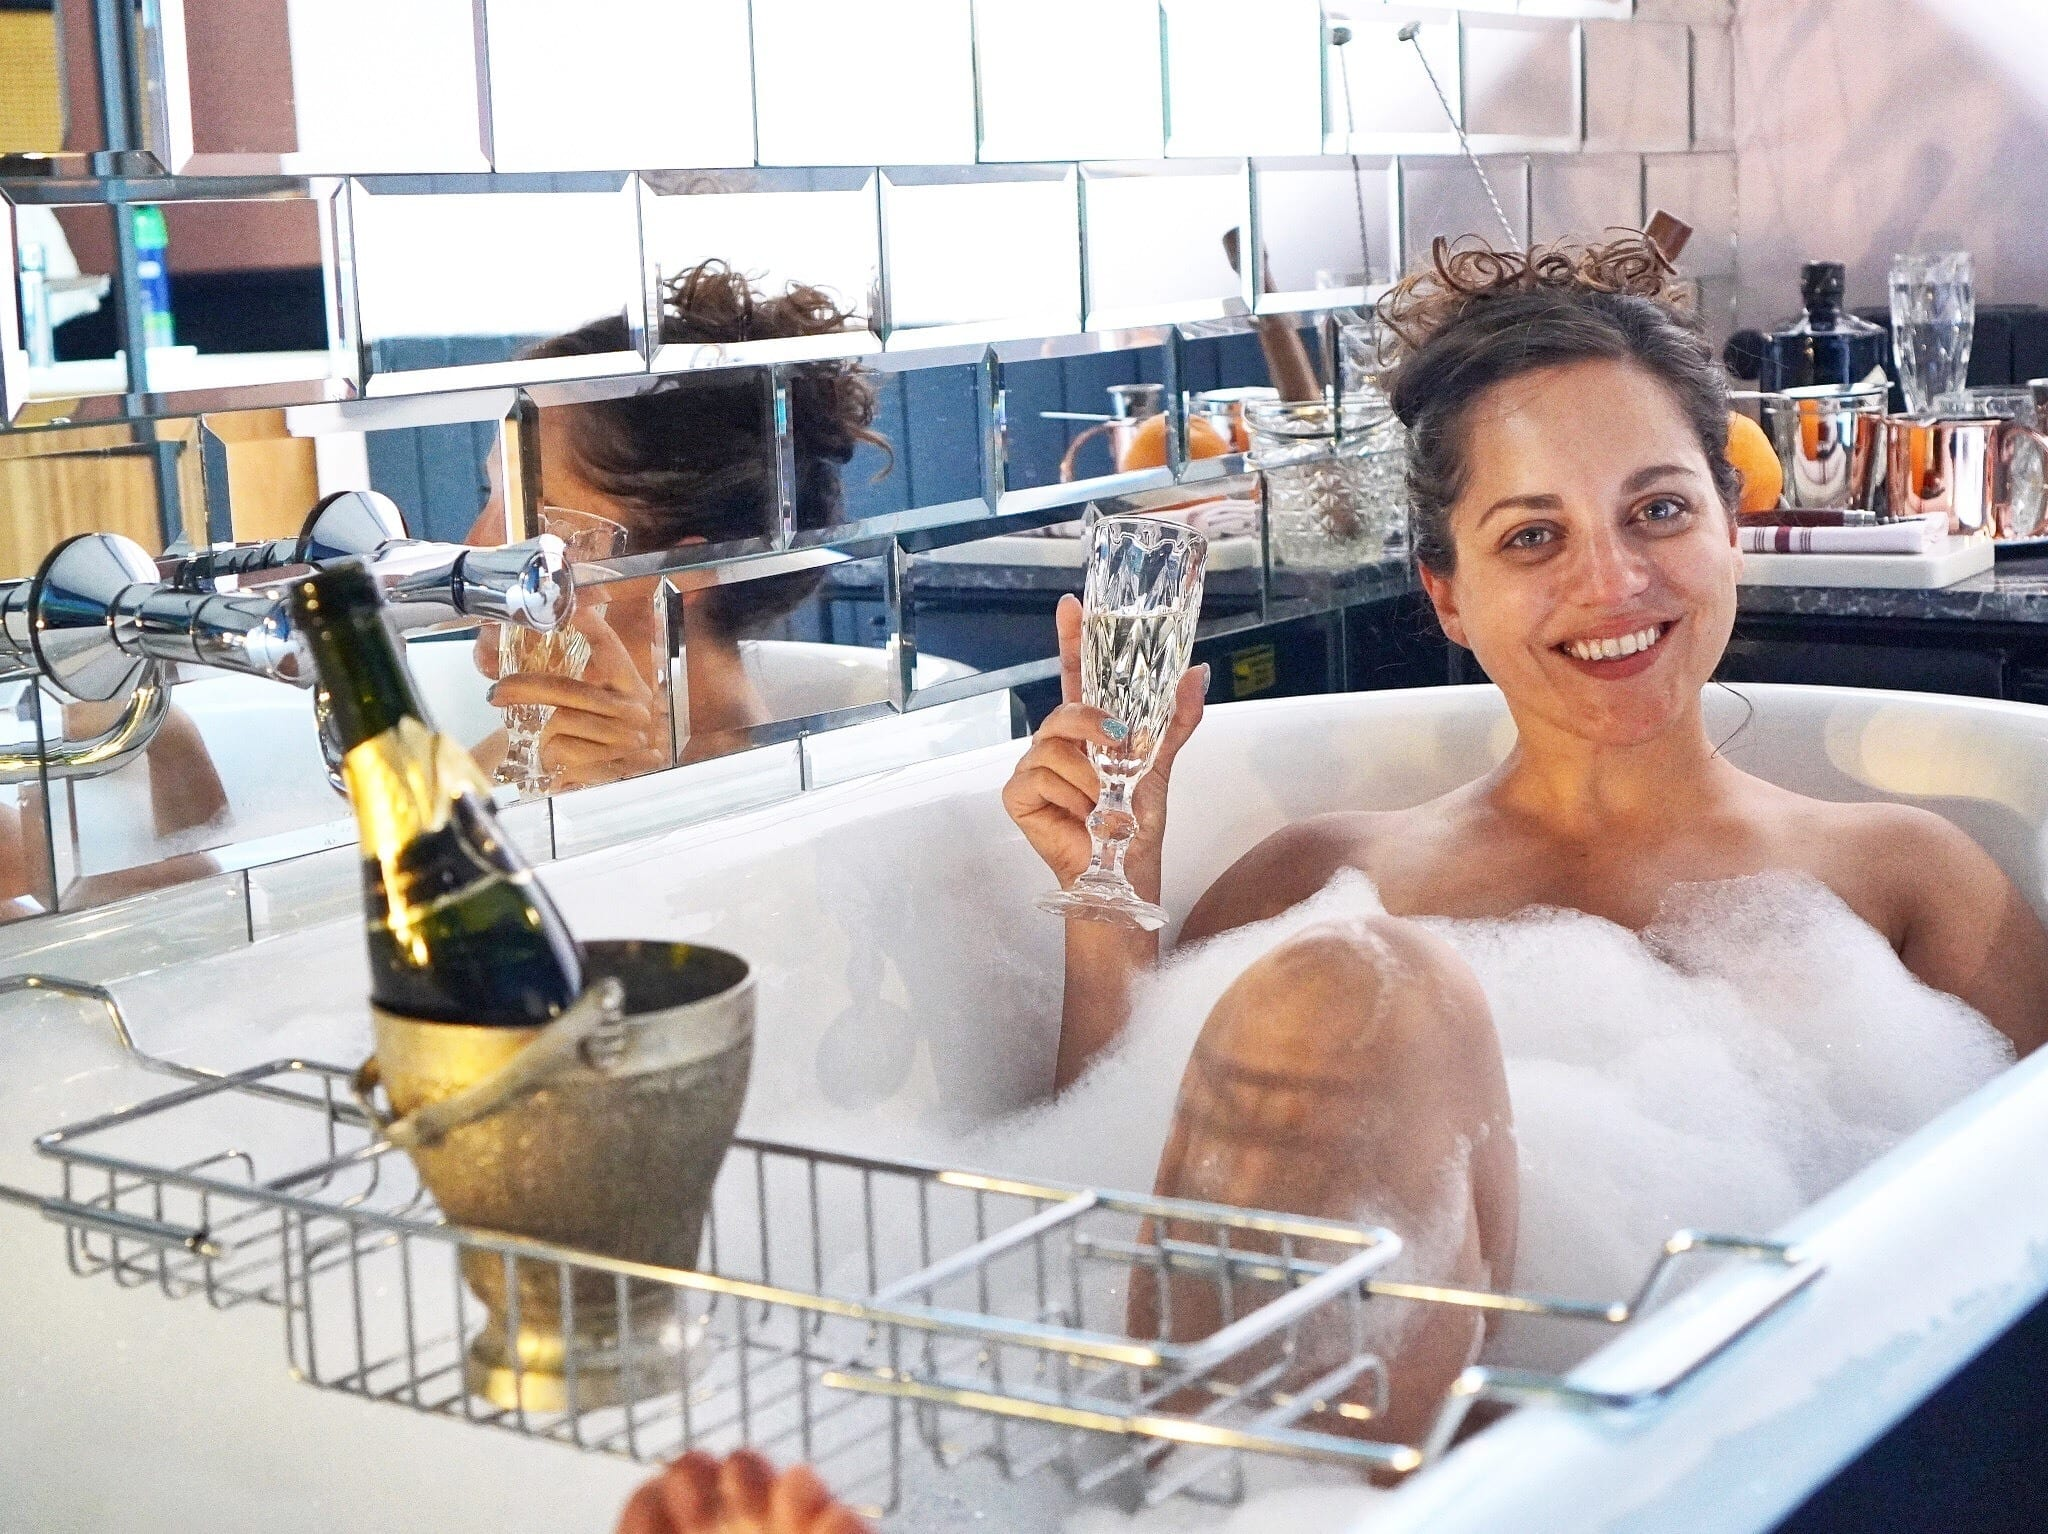 Kate in a bubble bath holding a glass of champagne with her hair up and smiling.